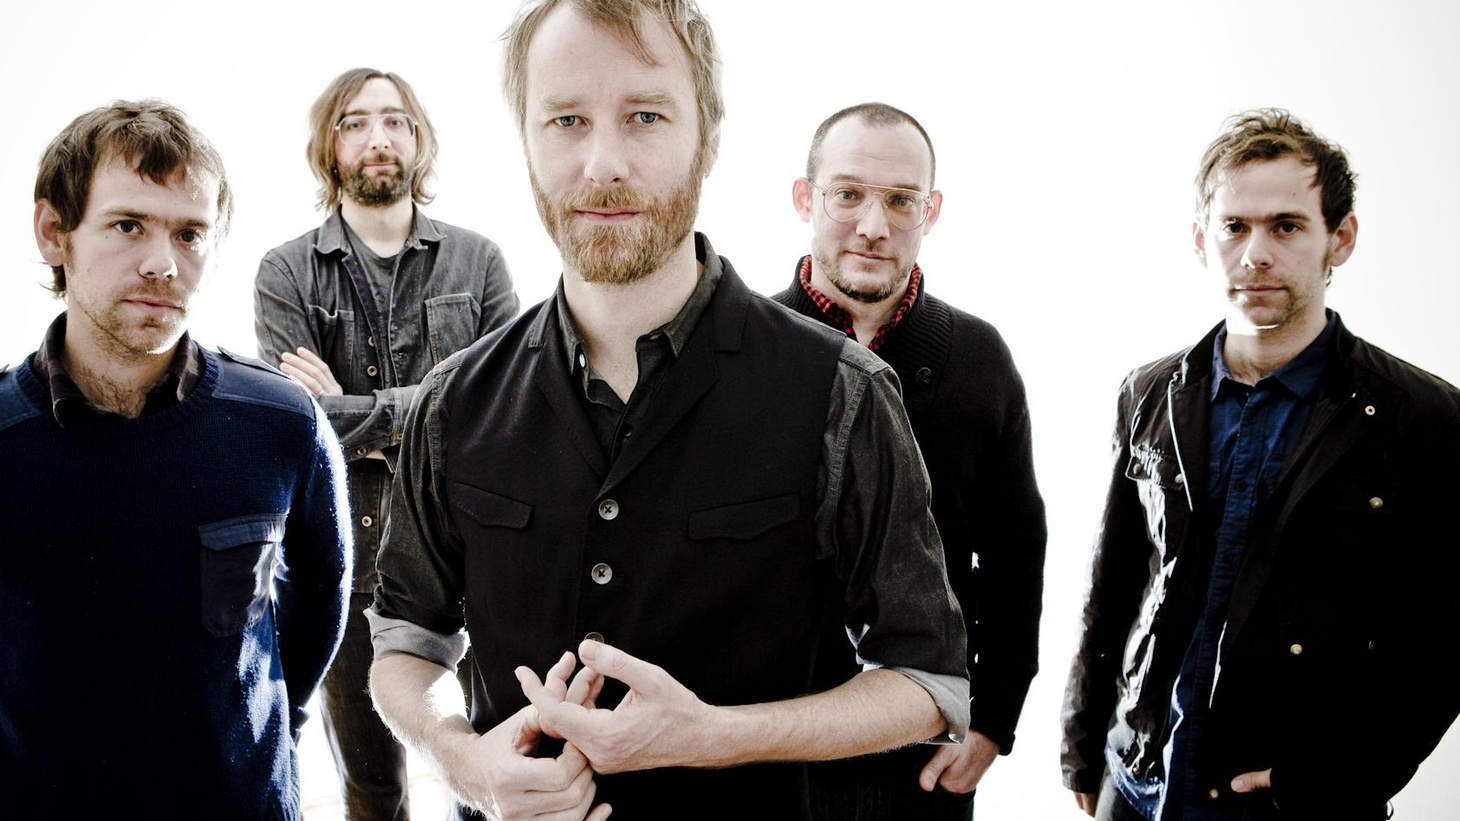 """Buzz about The National's new record """"High Violet"""" has been building for months.  On the eve of the album's release hear an advance listen of this stellar new work from the Brooklyn-based band."""